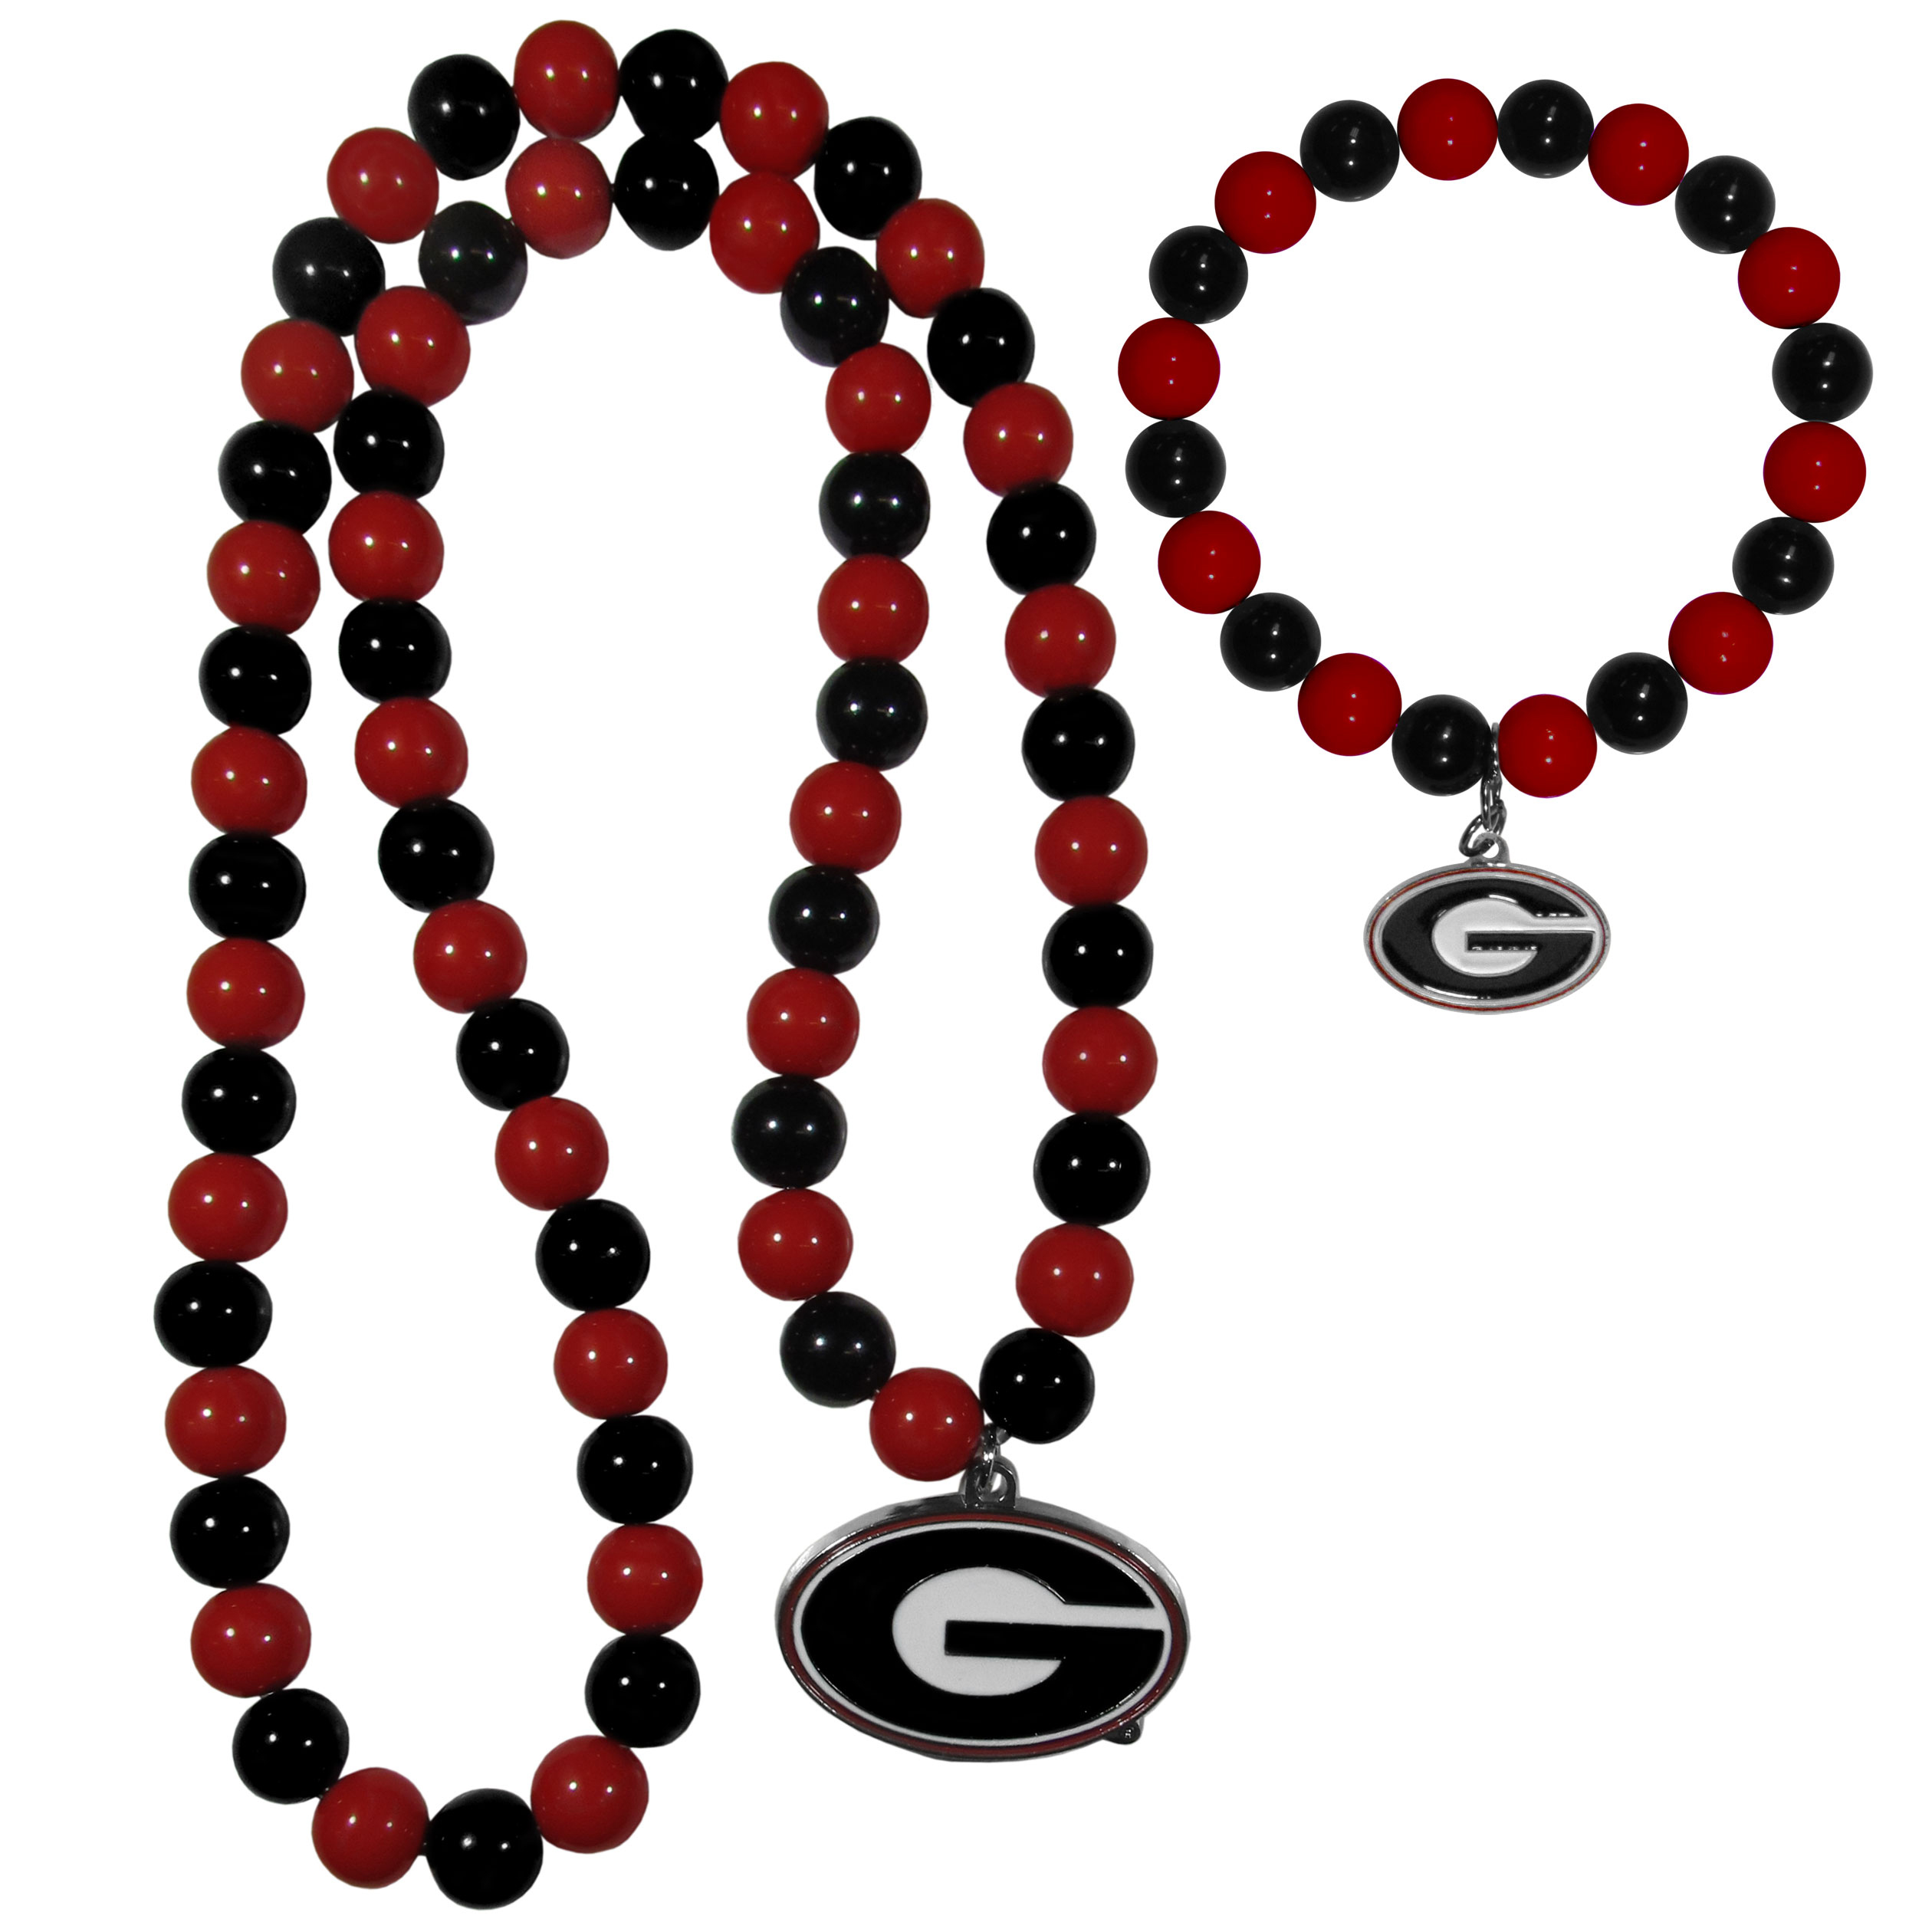 Georgia Bulldogs Fan Bead Necklace and Bracelet Set - These fun and colorful Georgia Bulldogs fan bead jewelry pieces are an eyecatching way to show off your team spirit. The striking necklace is a 24 inch string of alternating team colored beads with a large team pendant. The mathcing bracelet has alternating team colored beads on a stretch cord and features a matching team charm.